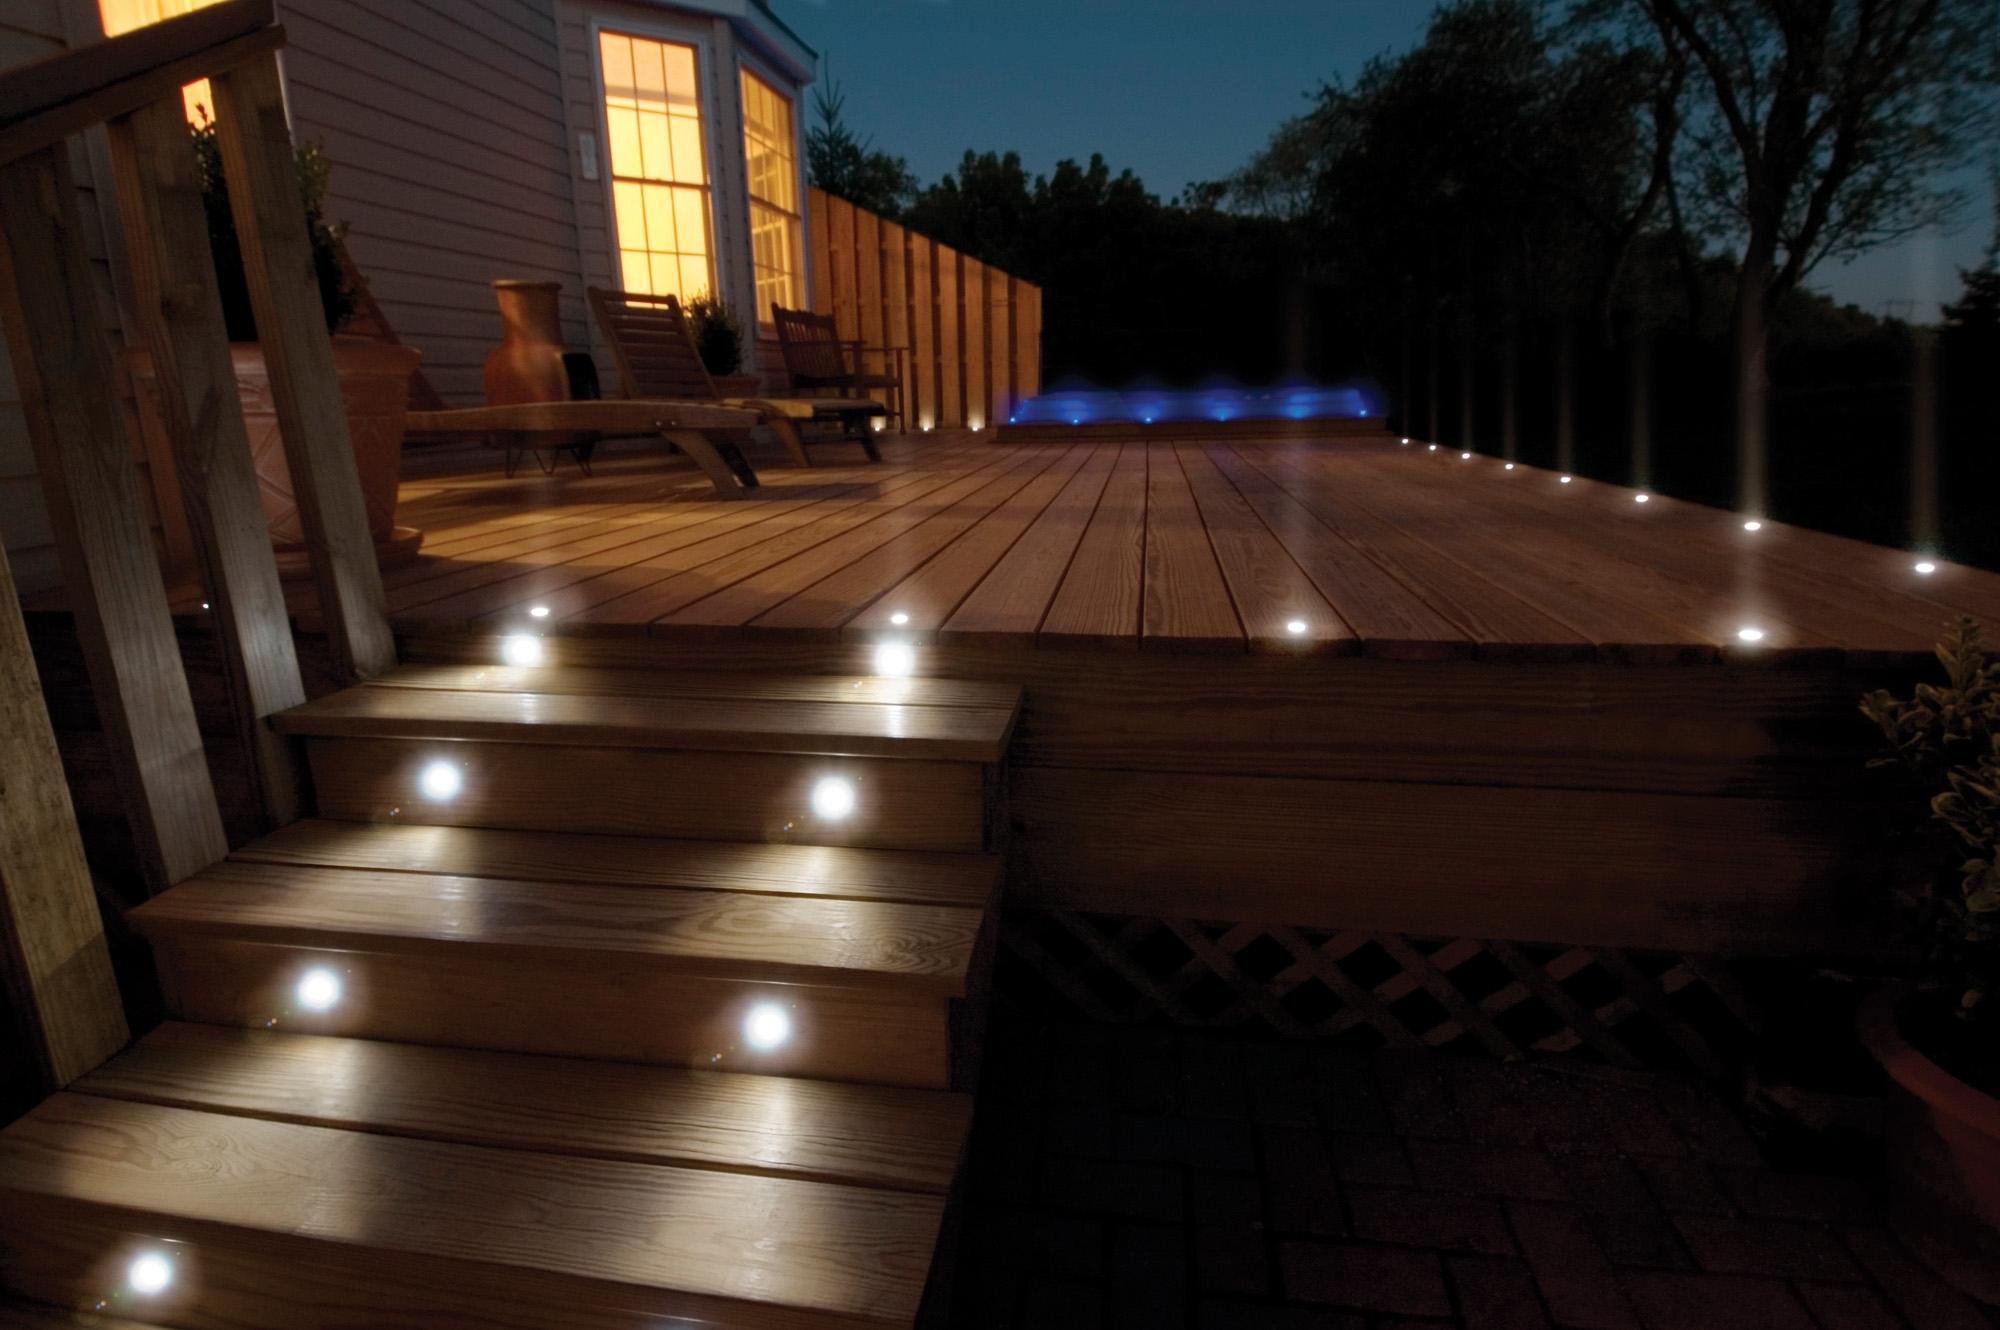 Led Light Design: Sophisticated Deck Led Lights For Outdoor Deck With Regard To Popular Modern Low Voltage Deck Lighting At Home Depot (View 19 of 20)